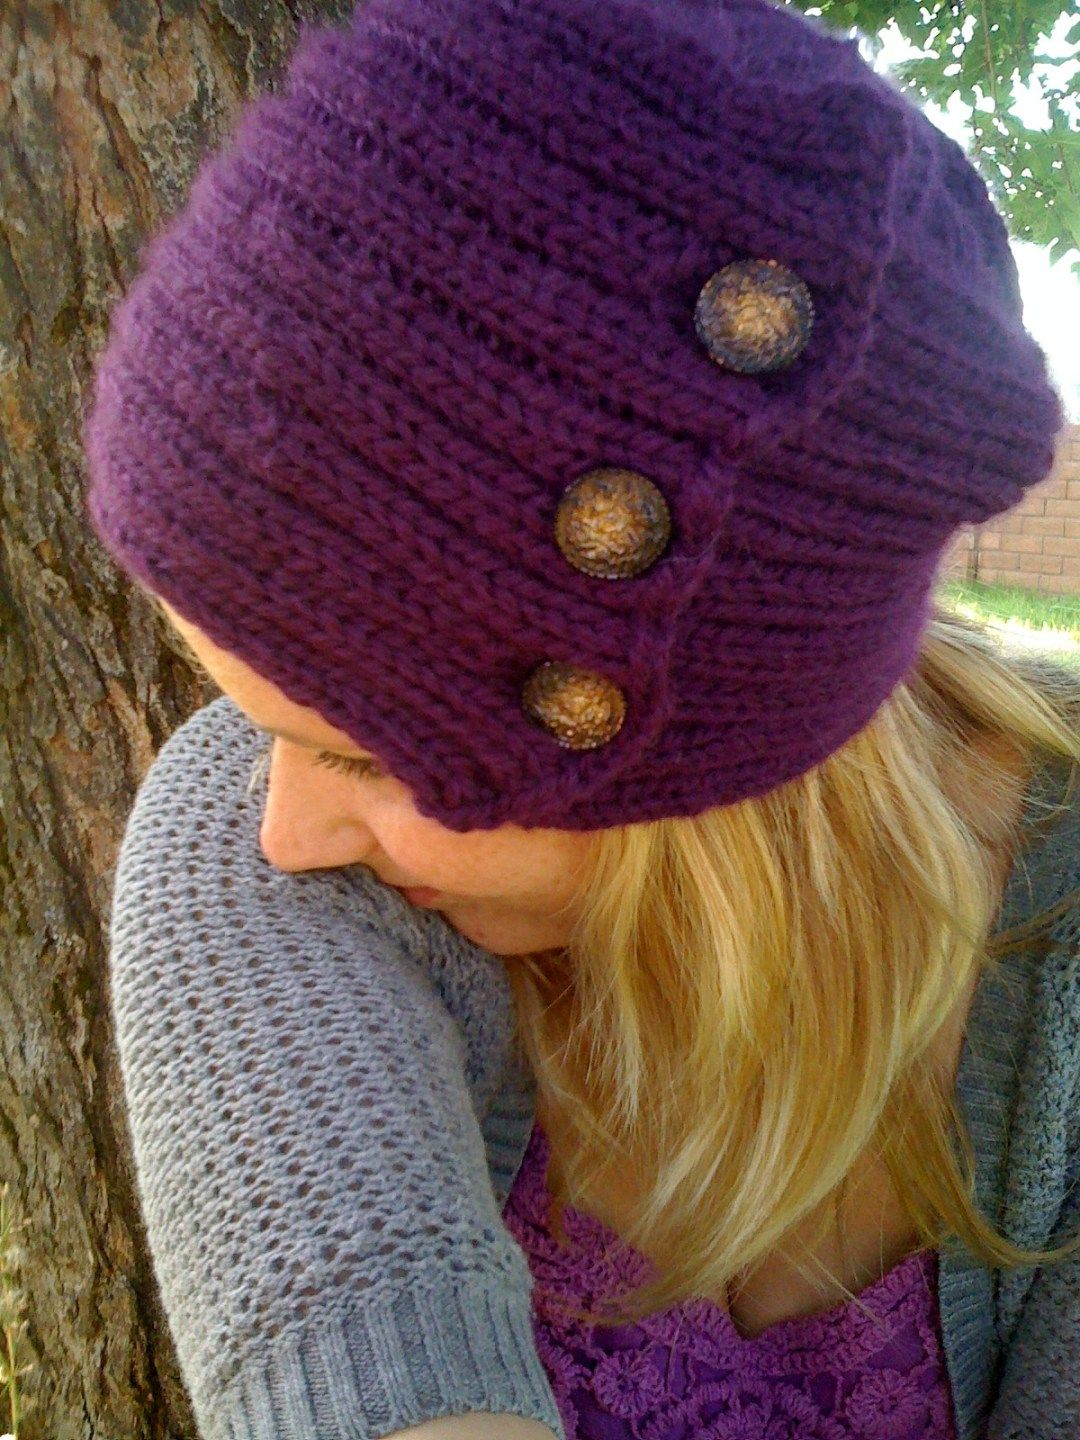 Free knitting pattern for Vintage Button and Rib Hat | Stricken ...